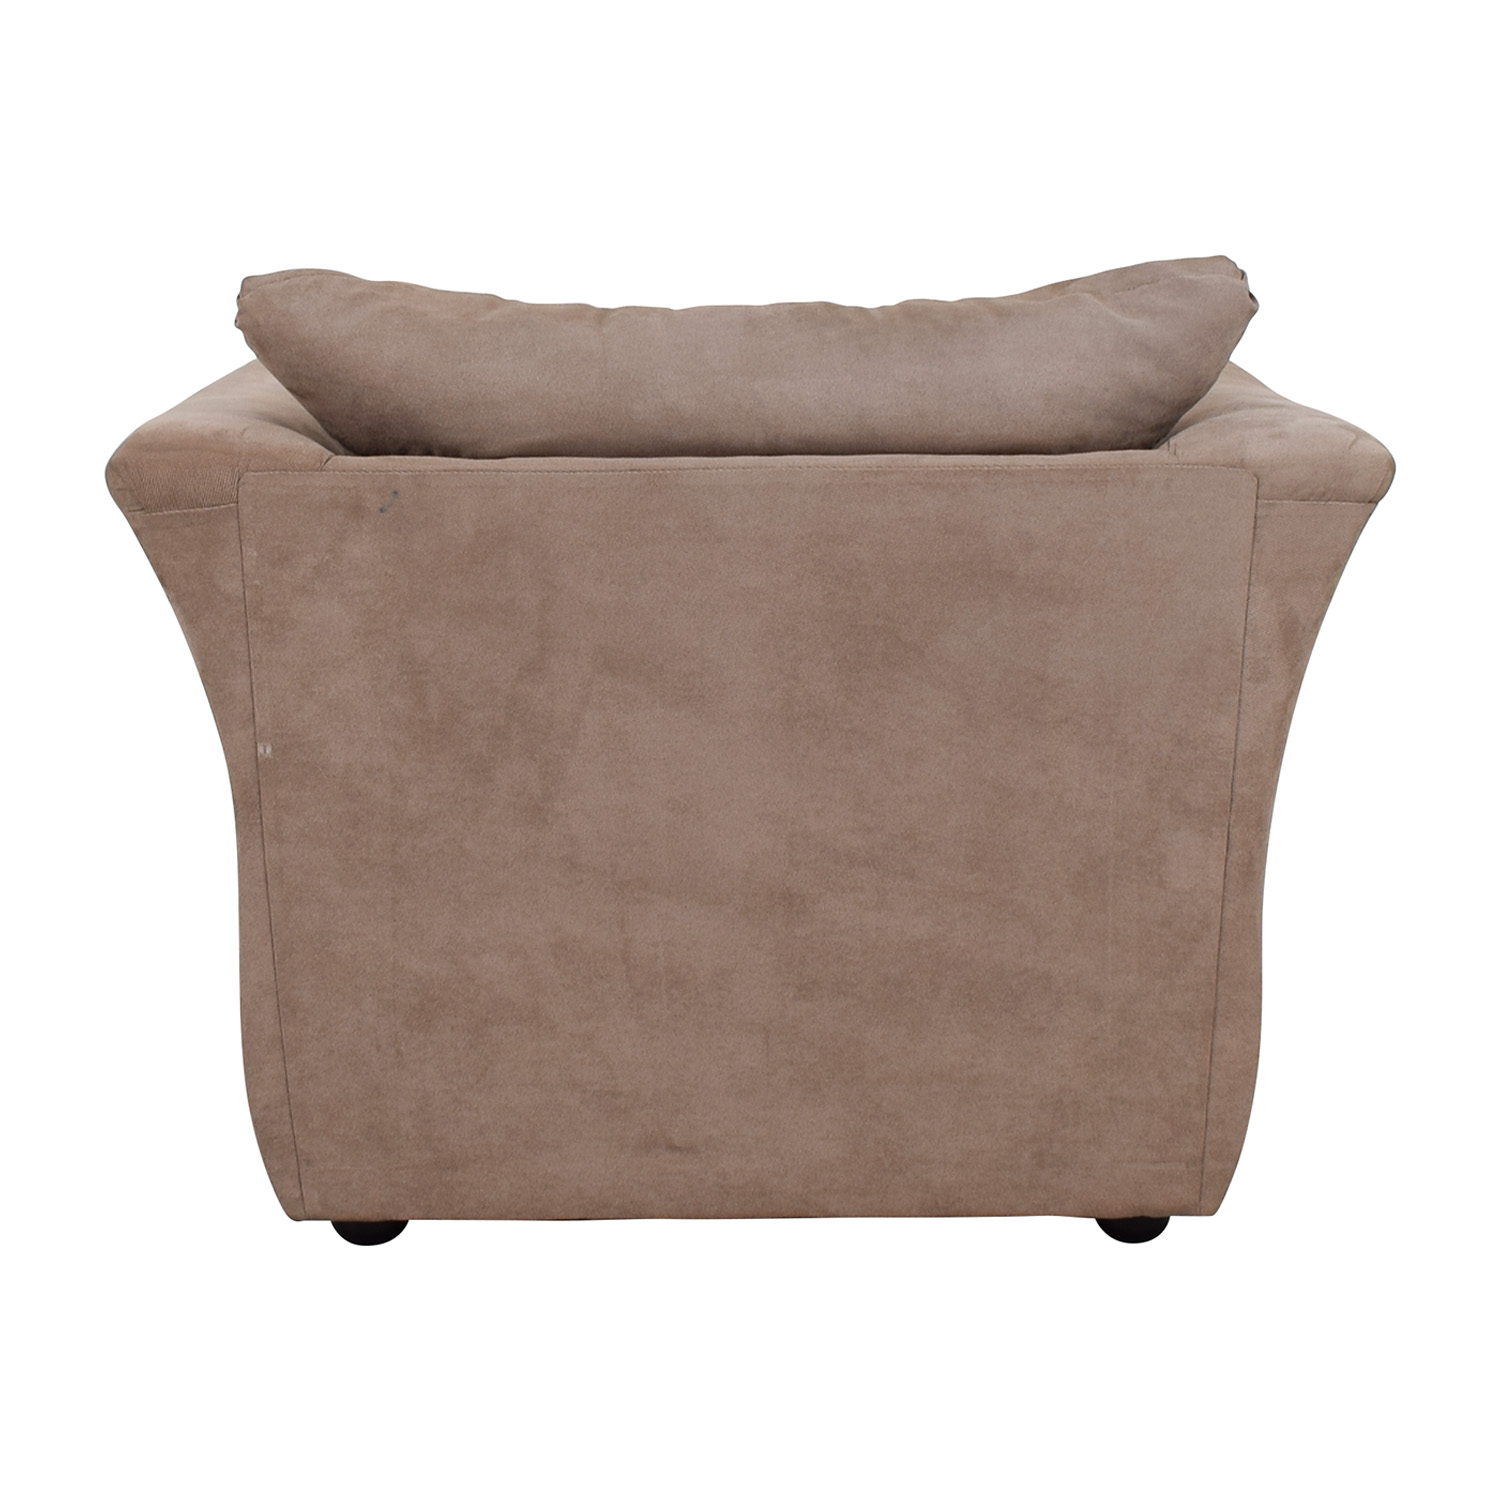 Jennifer Convertibles Pink Sofa Chair & Ottoman sale